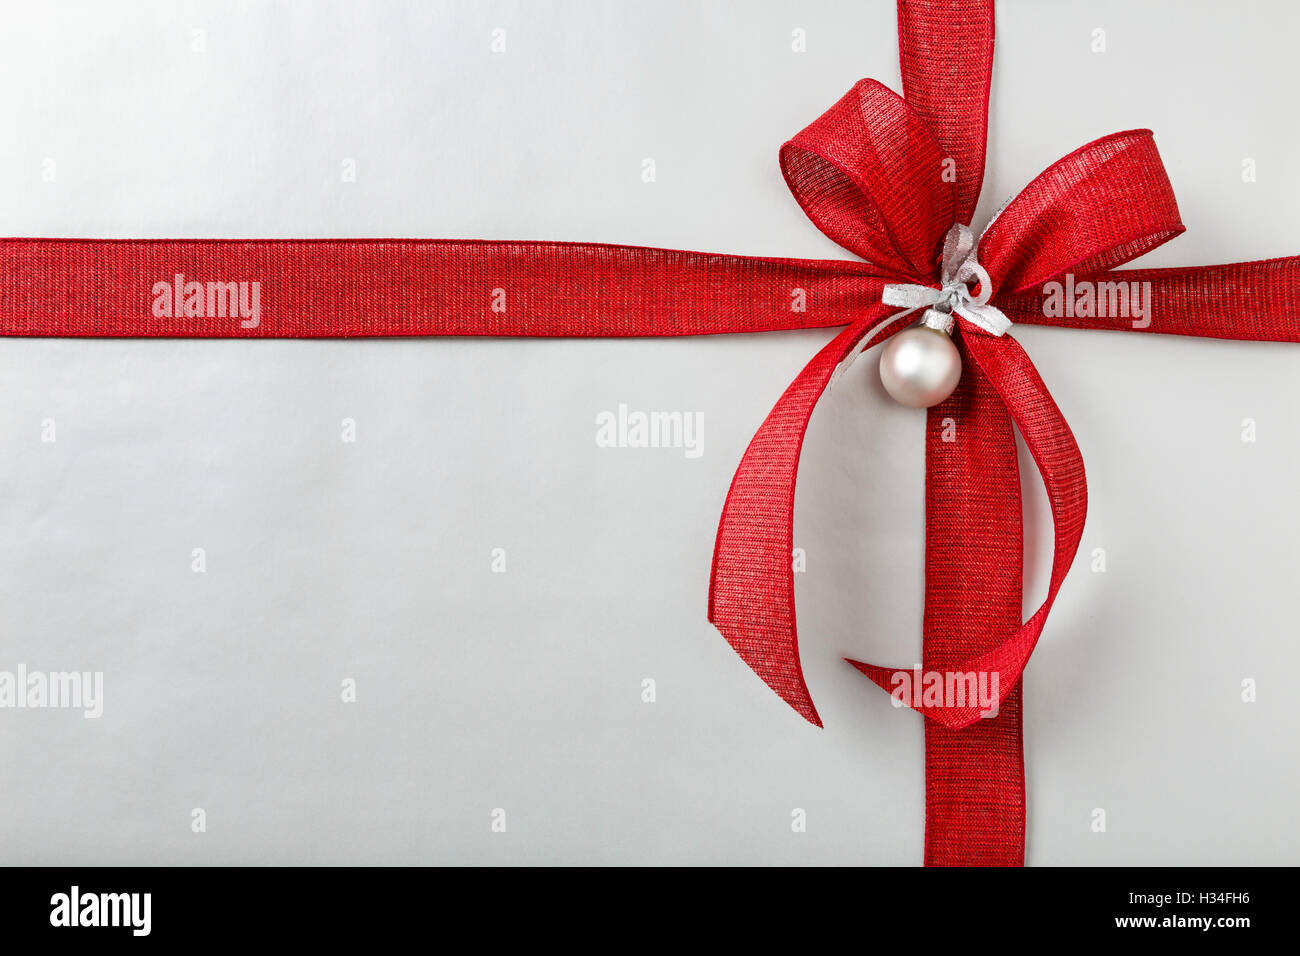 Christmas Present.Christmas Gift Christmas Present Background With Silver